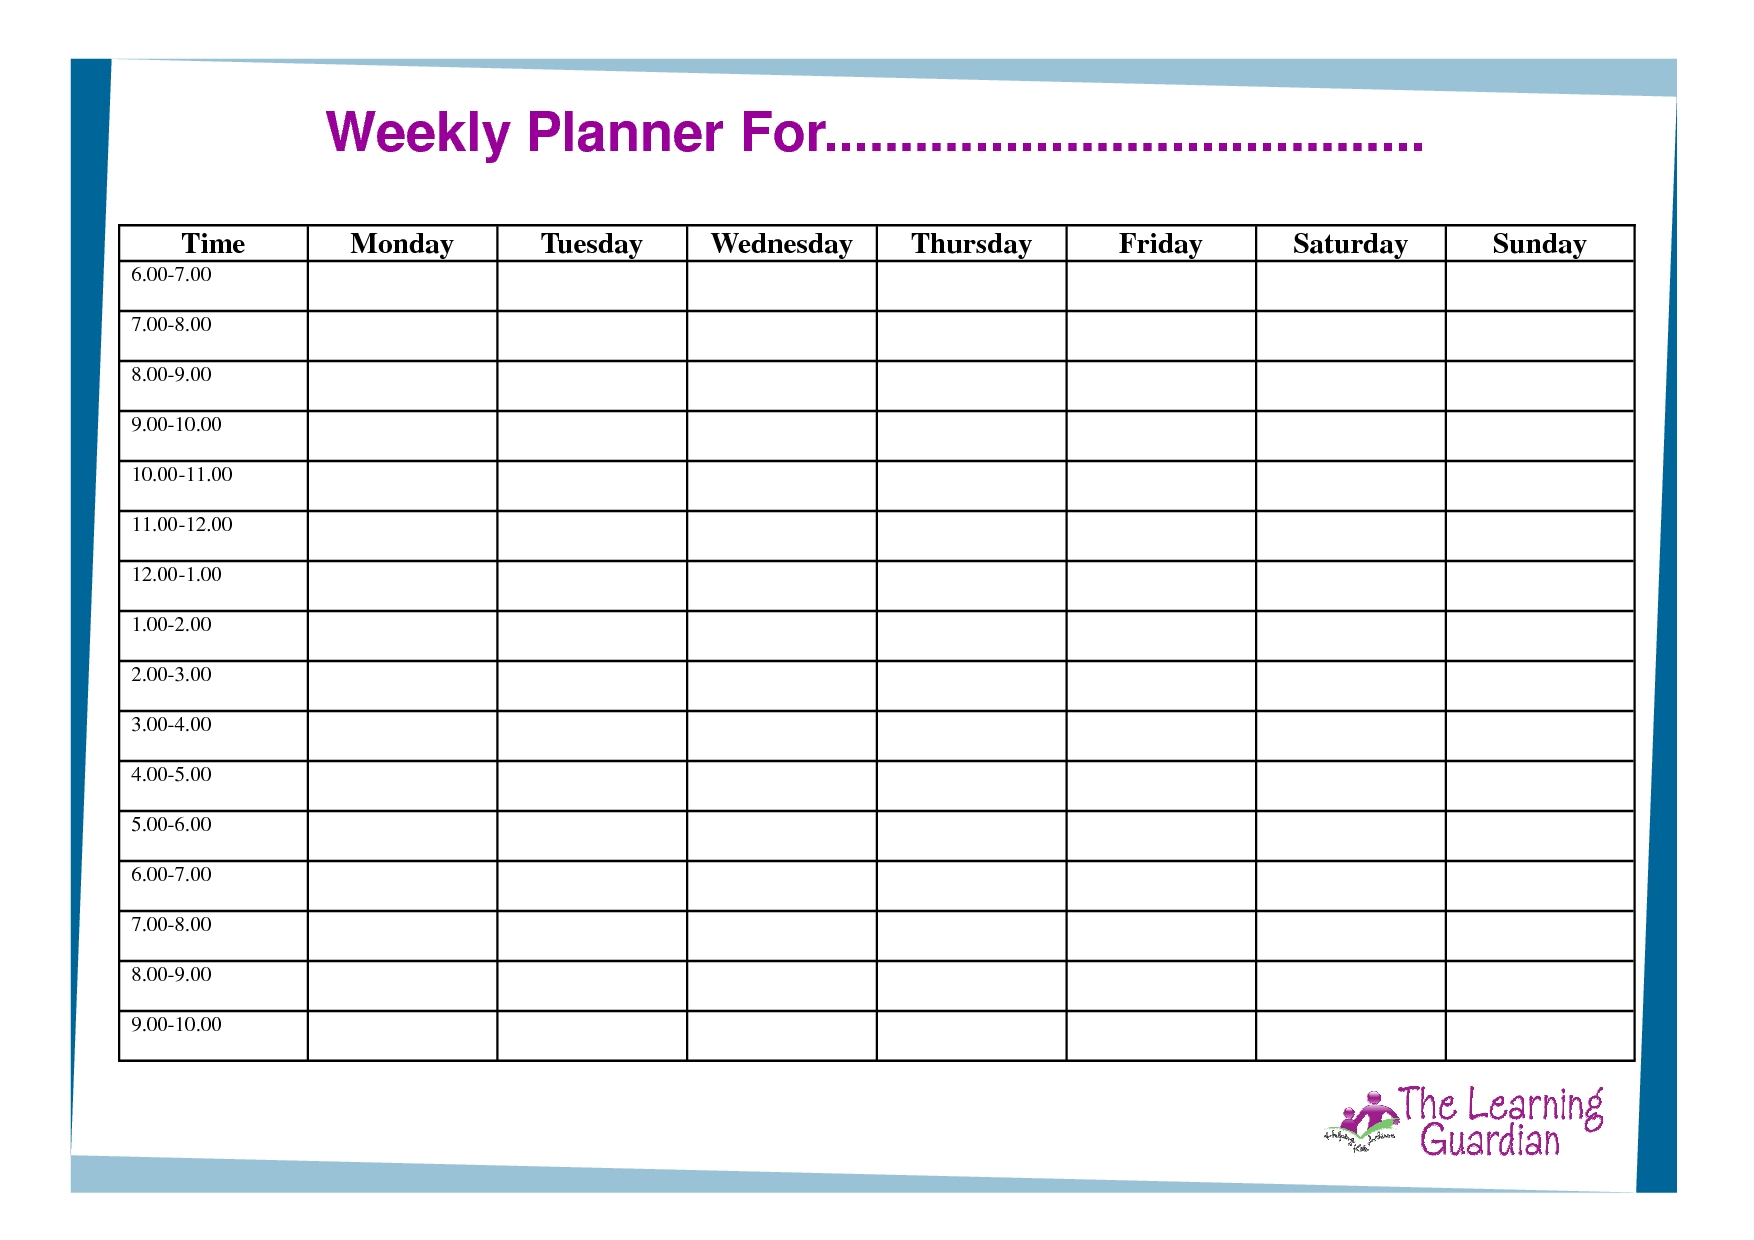 Template Weekly Planners Free Printable Planner Calendars Calendar in Free Printable Weekly Calendar With Time Slots